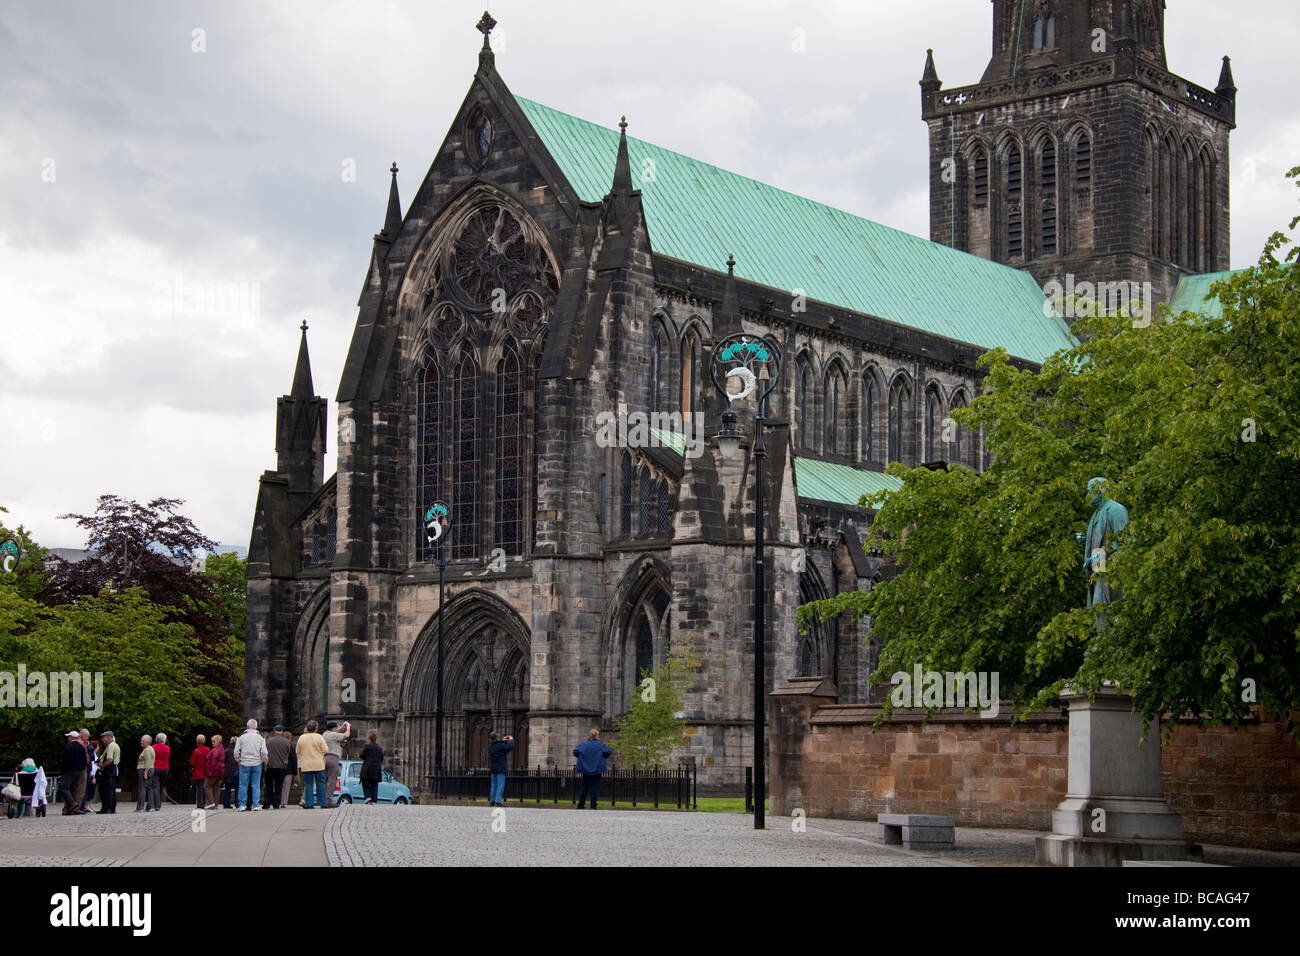 A tourist group visiting St Mungo's Cathedral, Glasgow, aka Glasgow Cathedral aka the High Kirk of Glasgow. - Stock Image